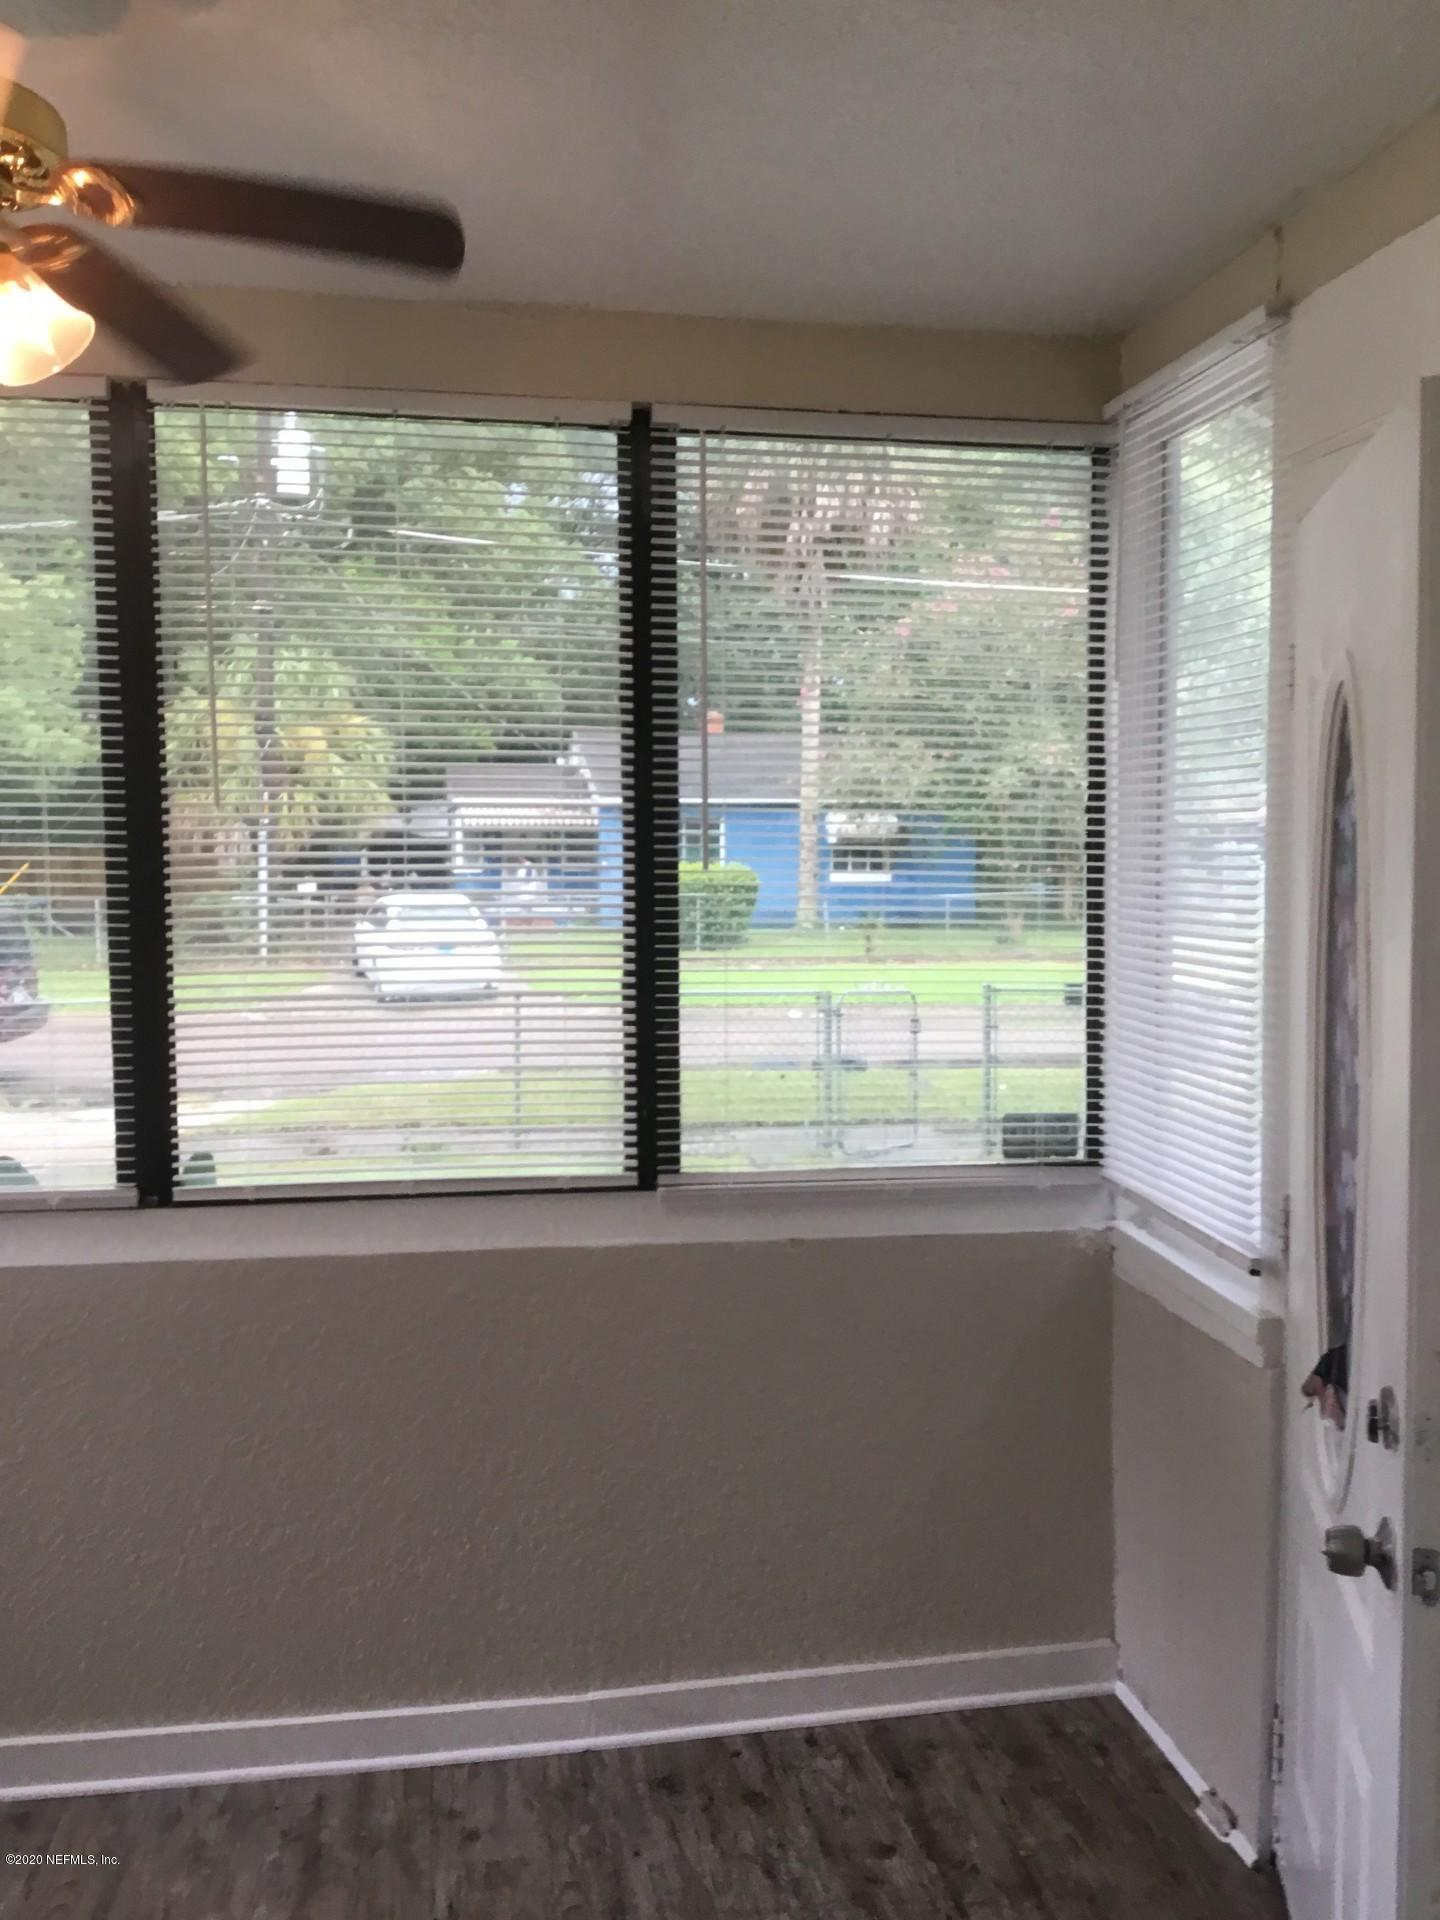 1064 MACKINAW, JACKSONVILLE, FLORIDA 32254, 3 Bedrooms Bedrooms, ,1 BathroomBathrooms,Investment / MultiFamily,For sale,MACKINAW,1080523